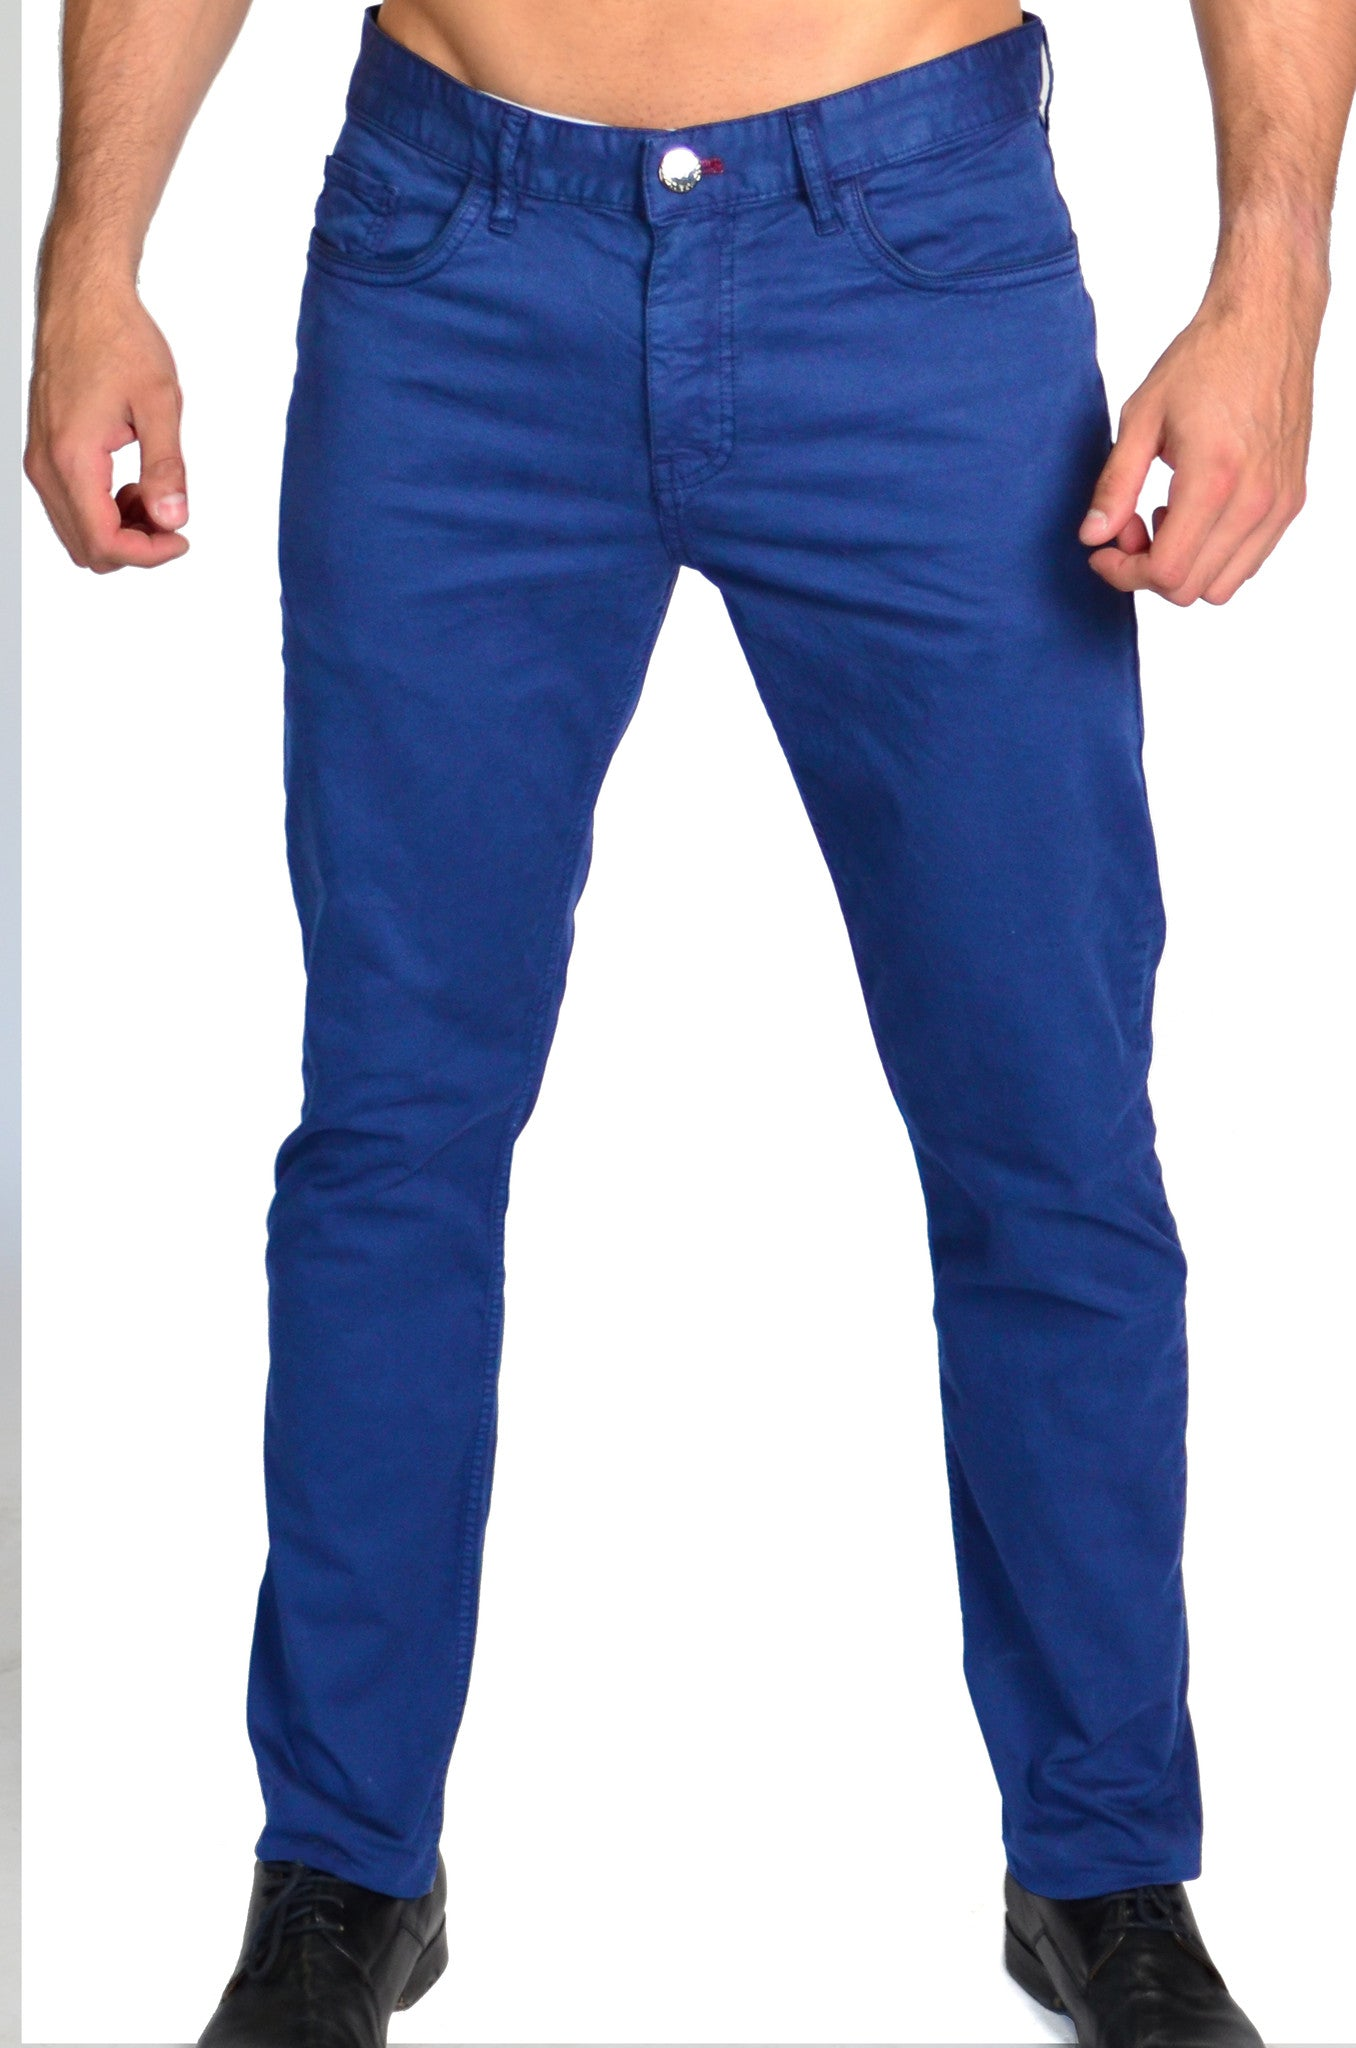 Cobalt Blue Denim Pants by Via Uomo - Slim